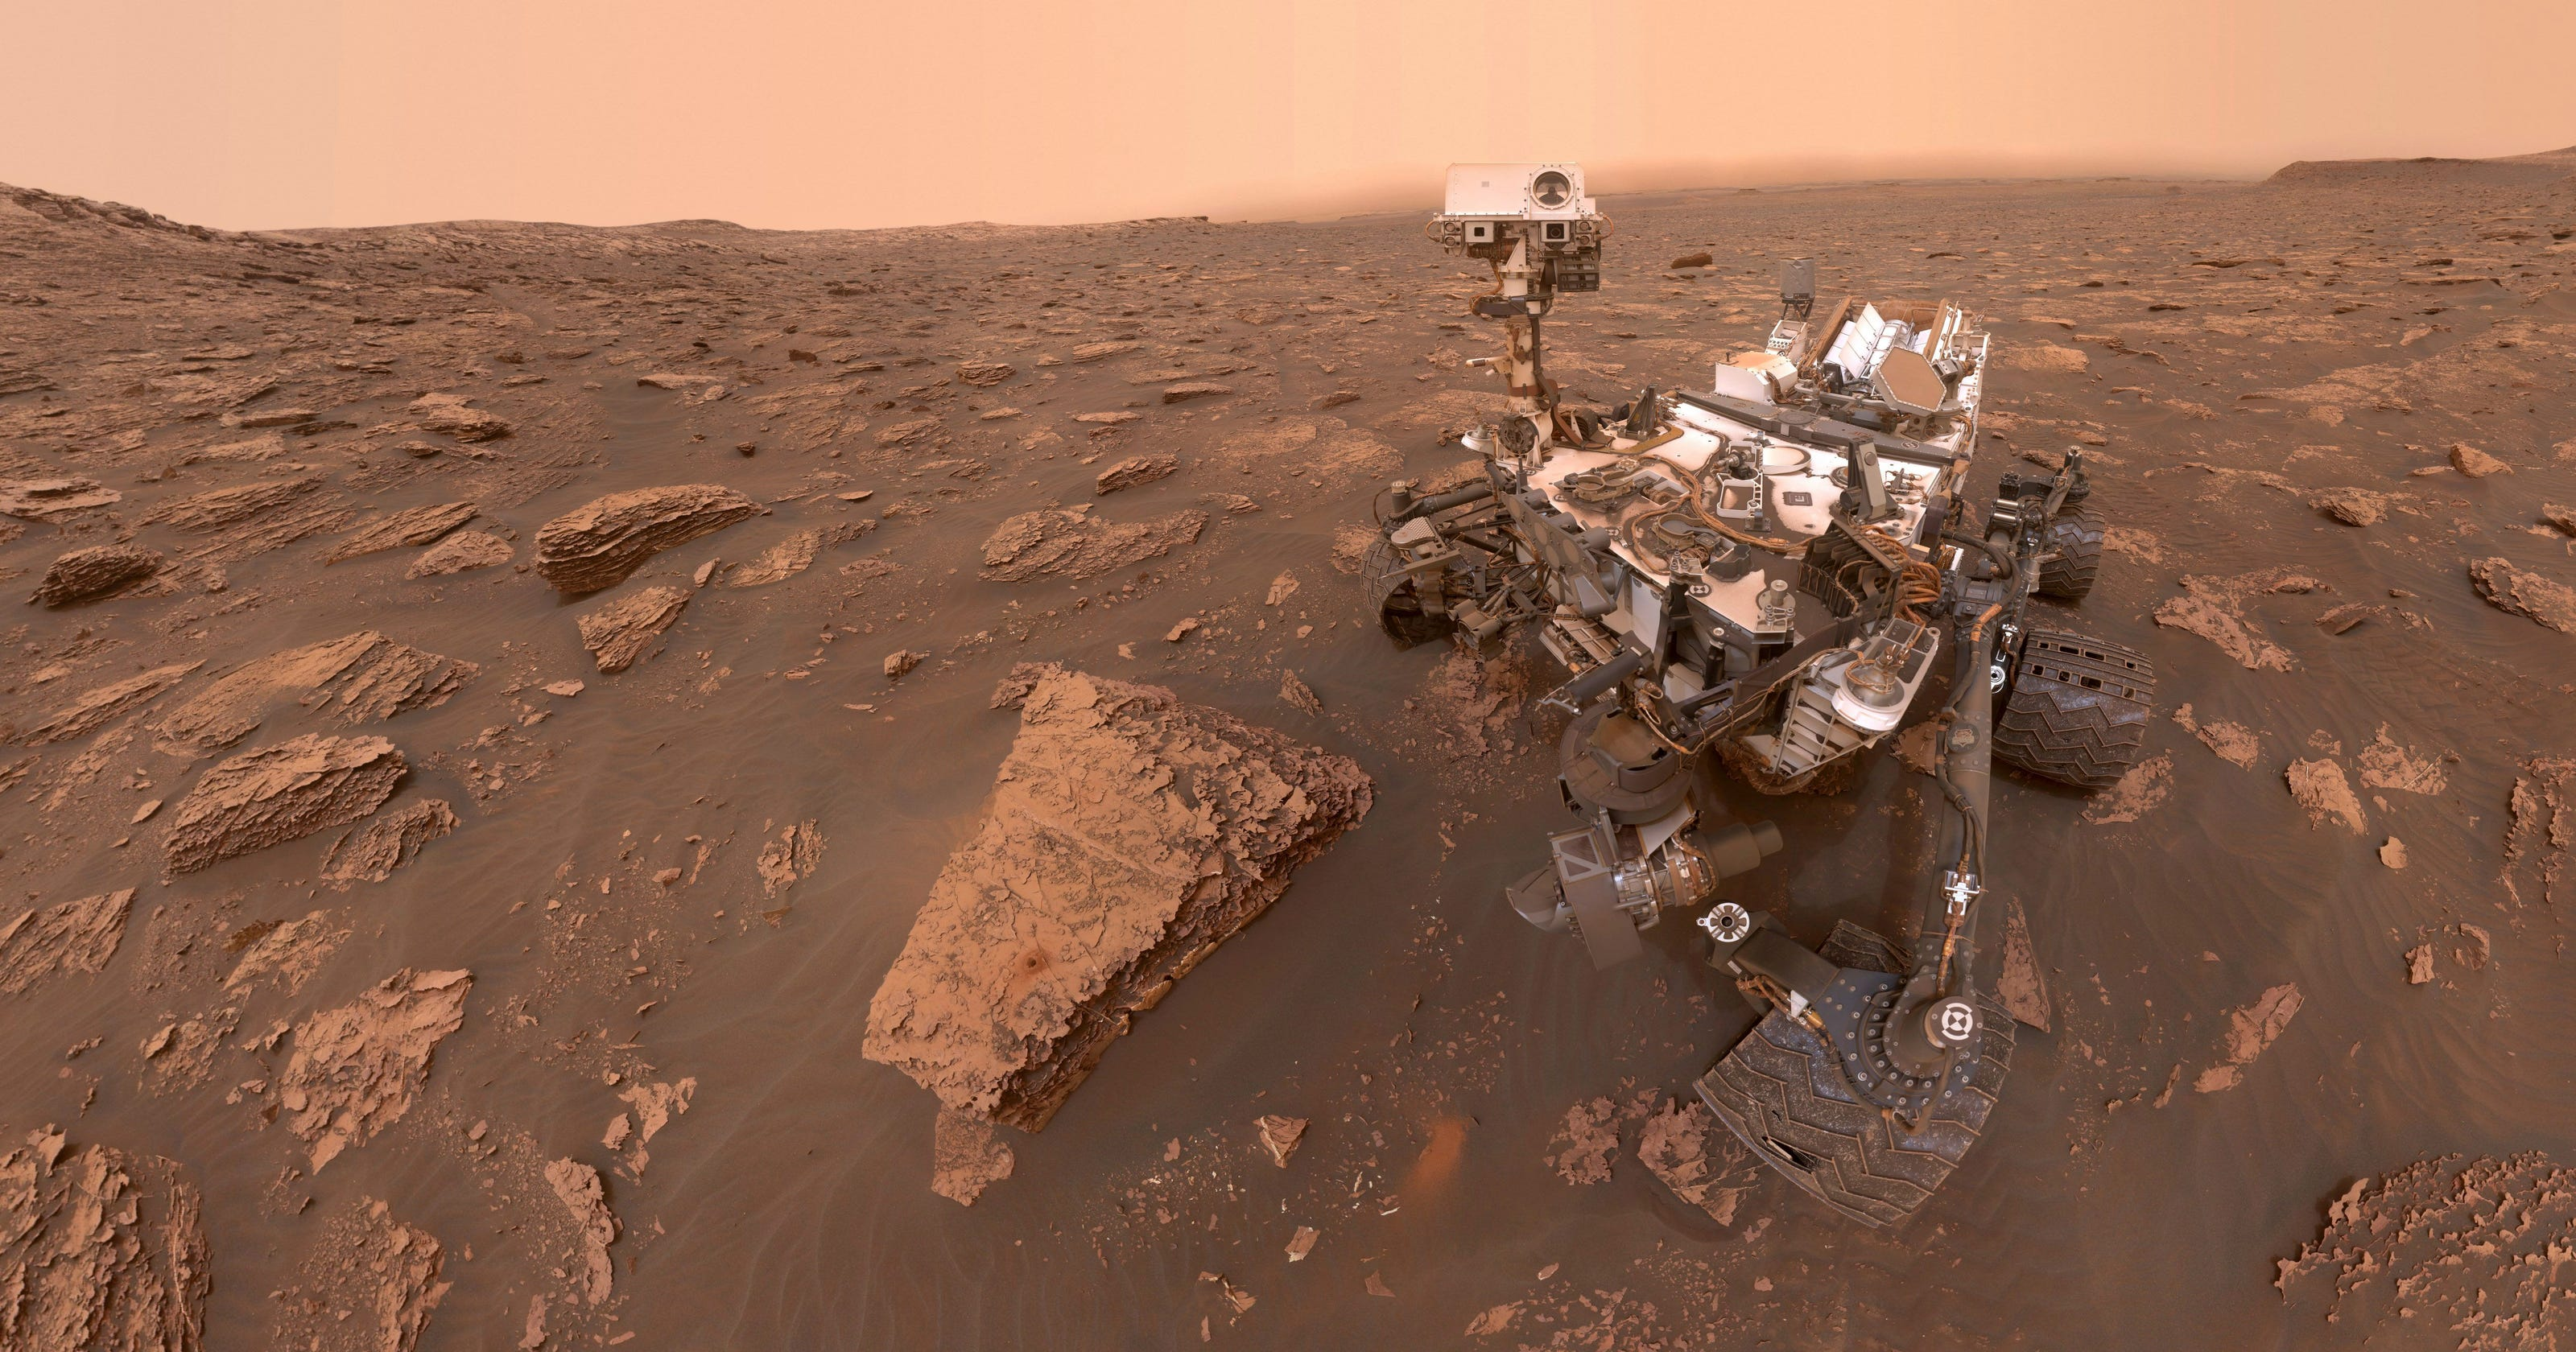 Mars rover Opportunity dead, NASA says after 8 months ...